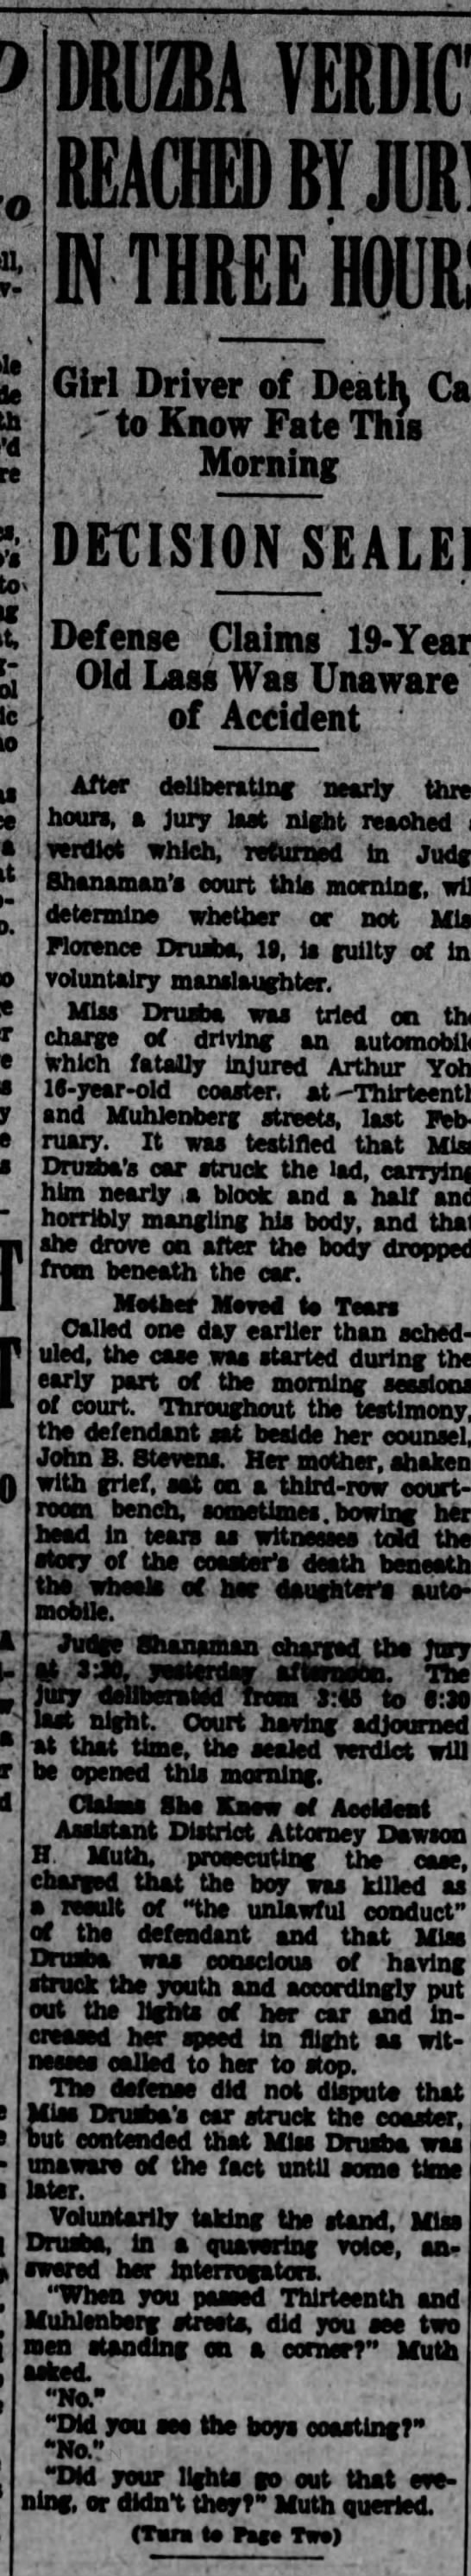 Death of Arthur Yoh